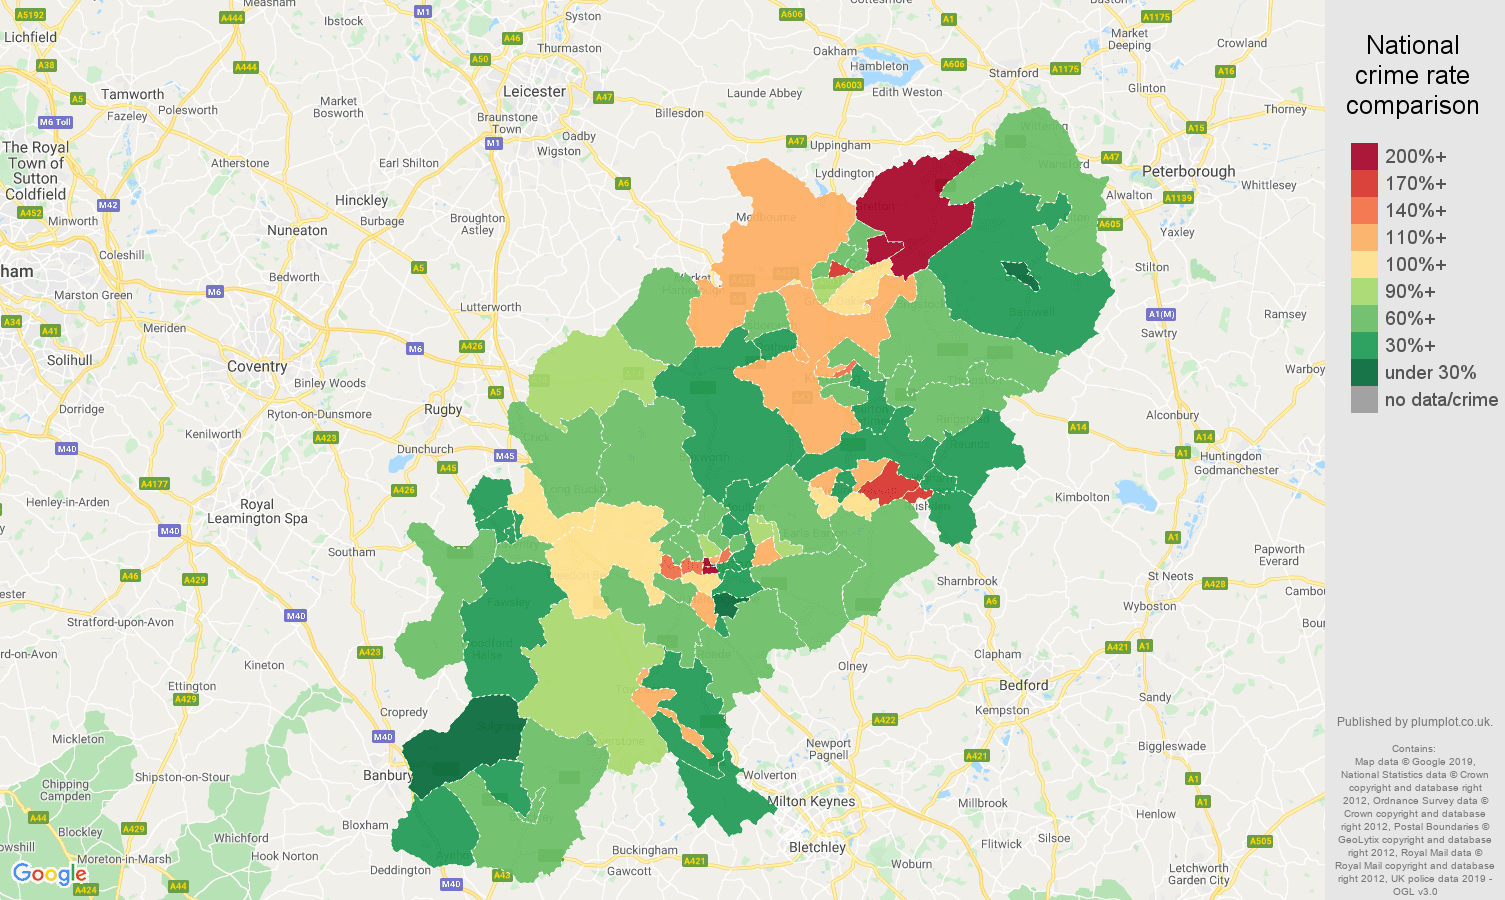 Northamptonshire other theft crime rate comparison map